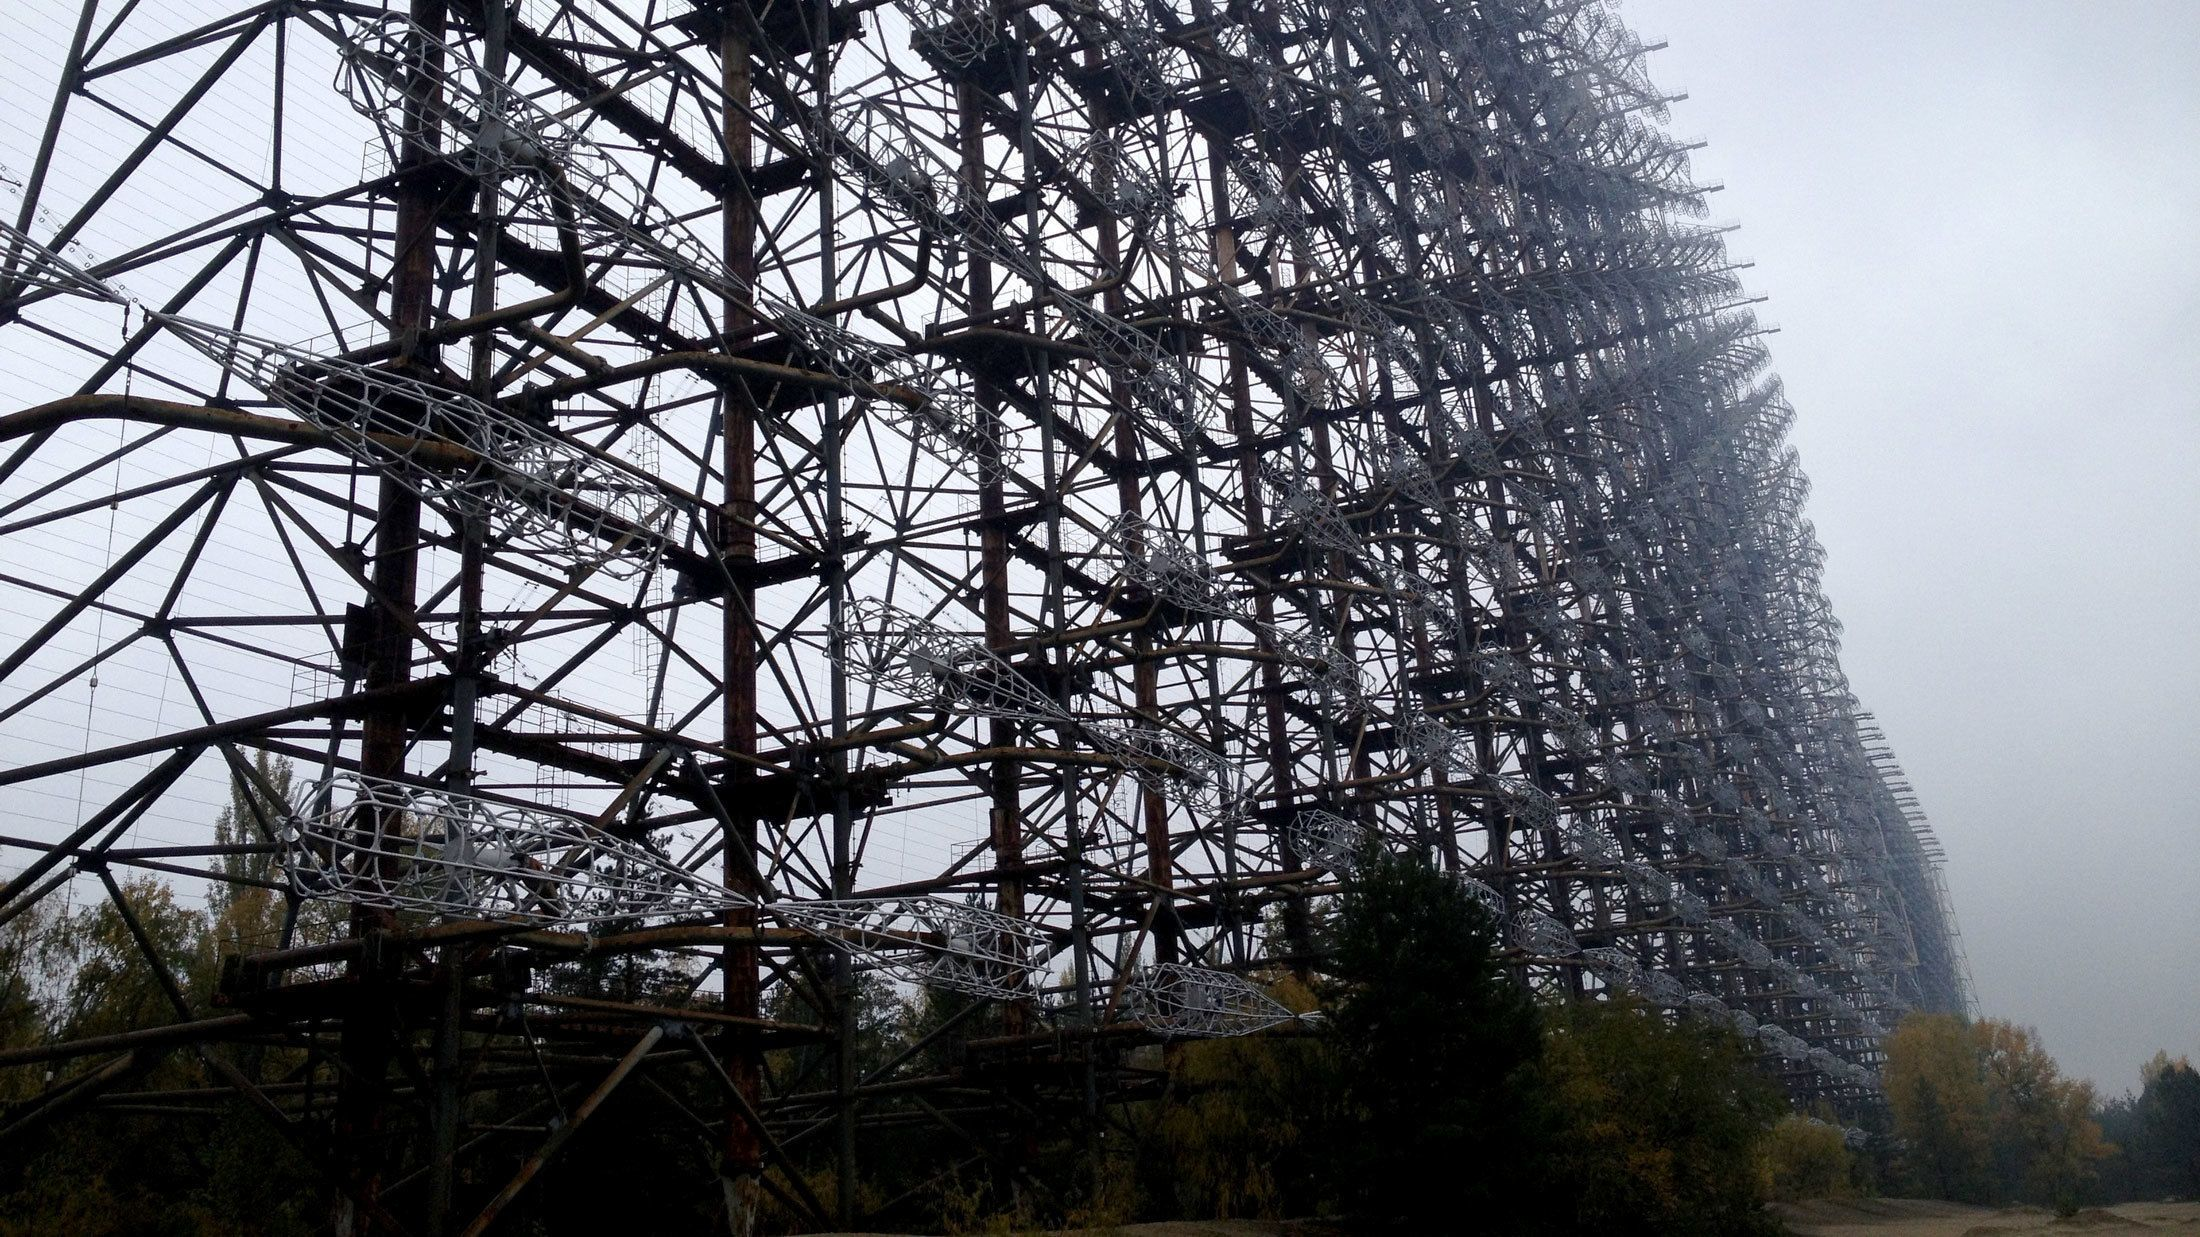 Duga Radar station in Chernobyl